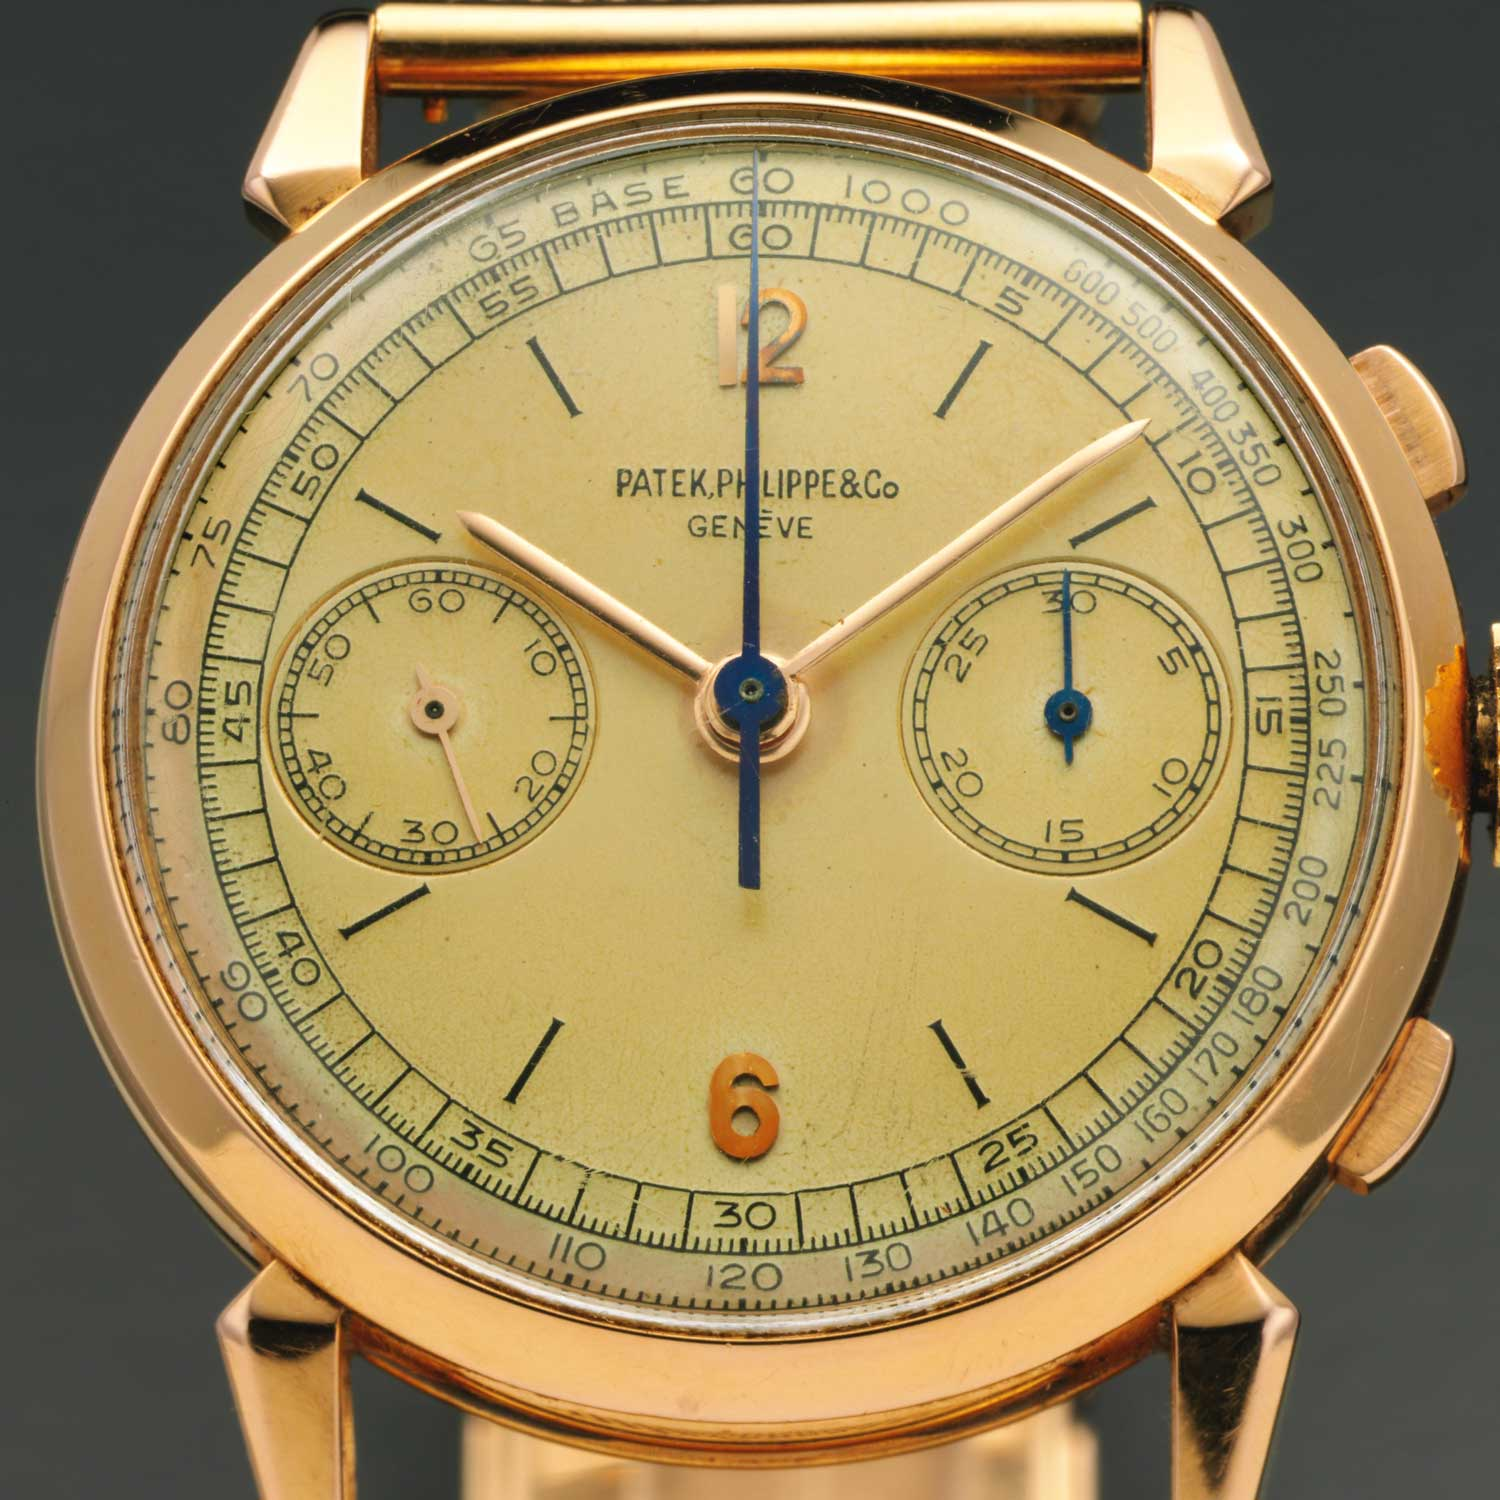 A closeup of the dial of the 1948 Patek Philippe ref. 1579 pink gold chronograph with silvered dial, gold applied Arabic numerals and enamelled baton indexes (Image: Sothebys.com)